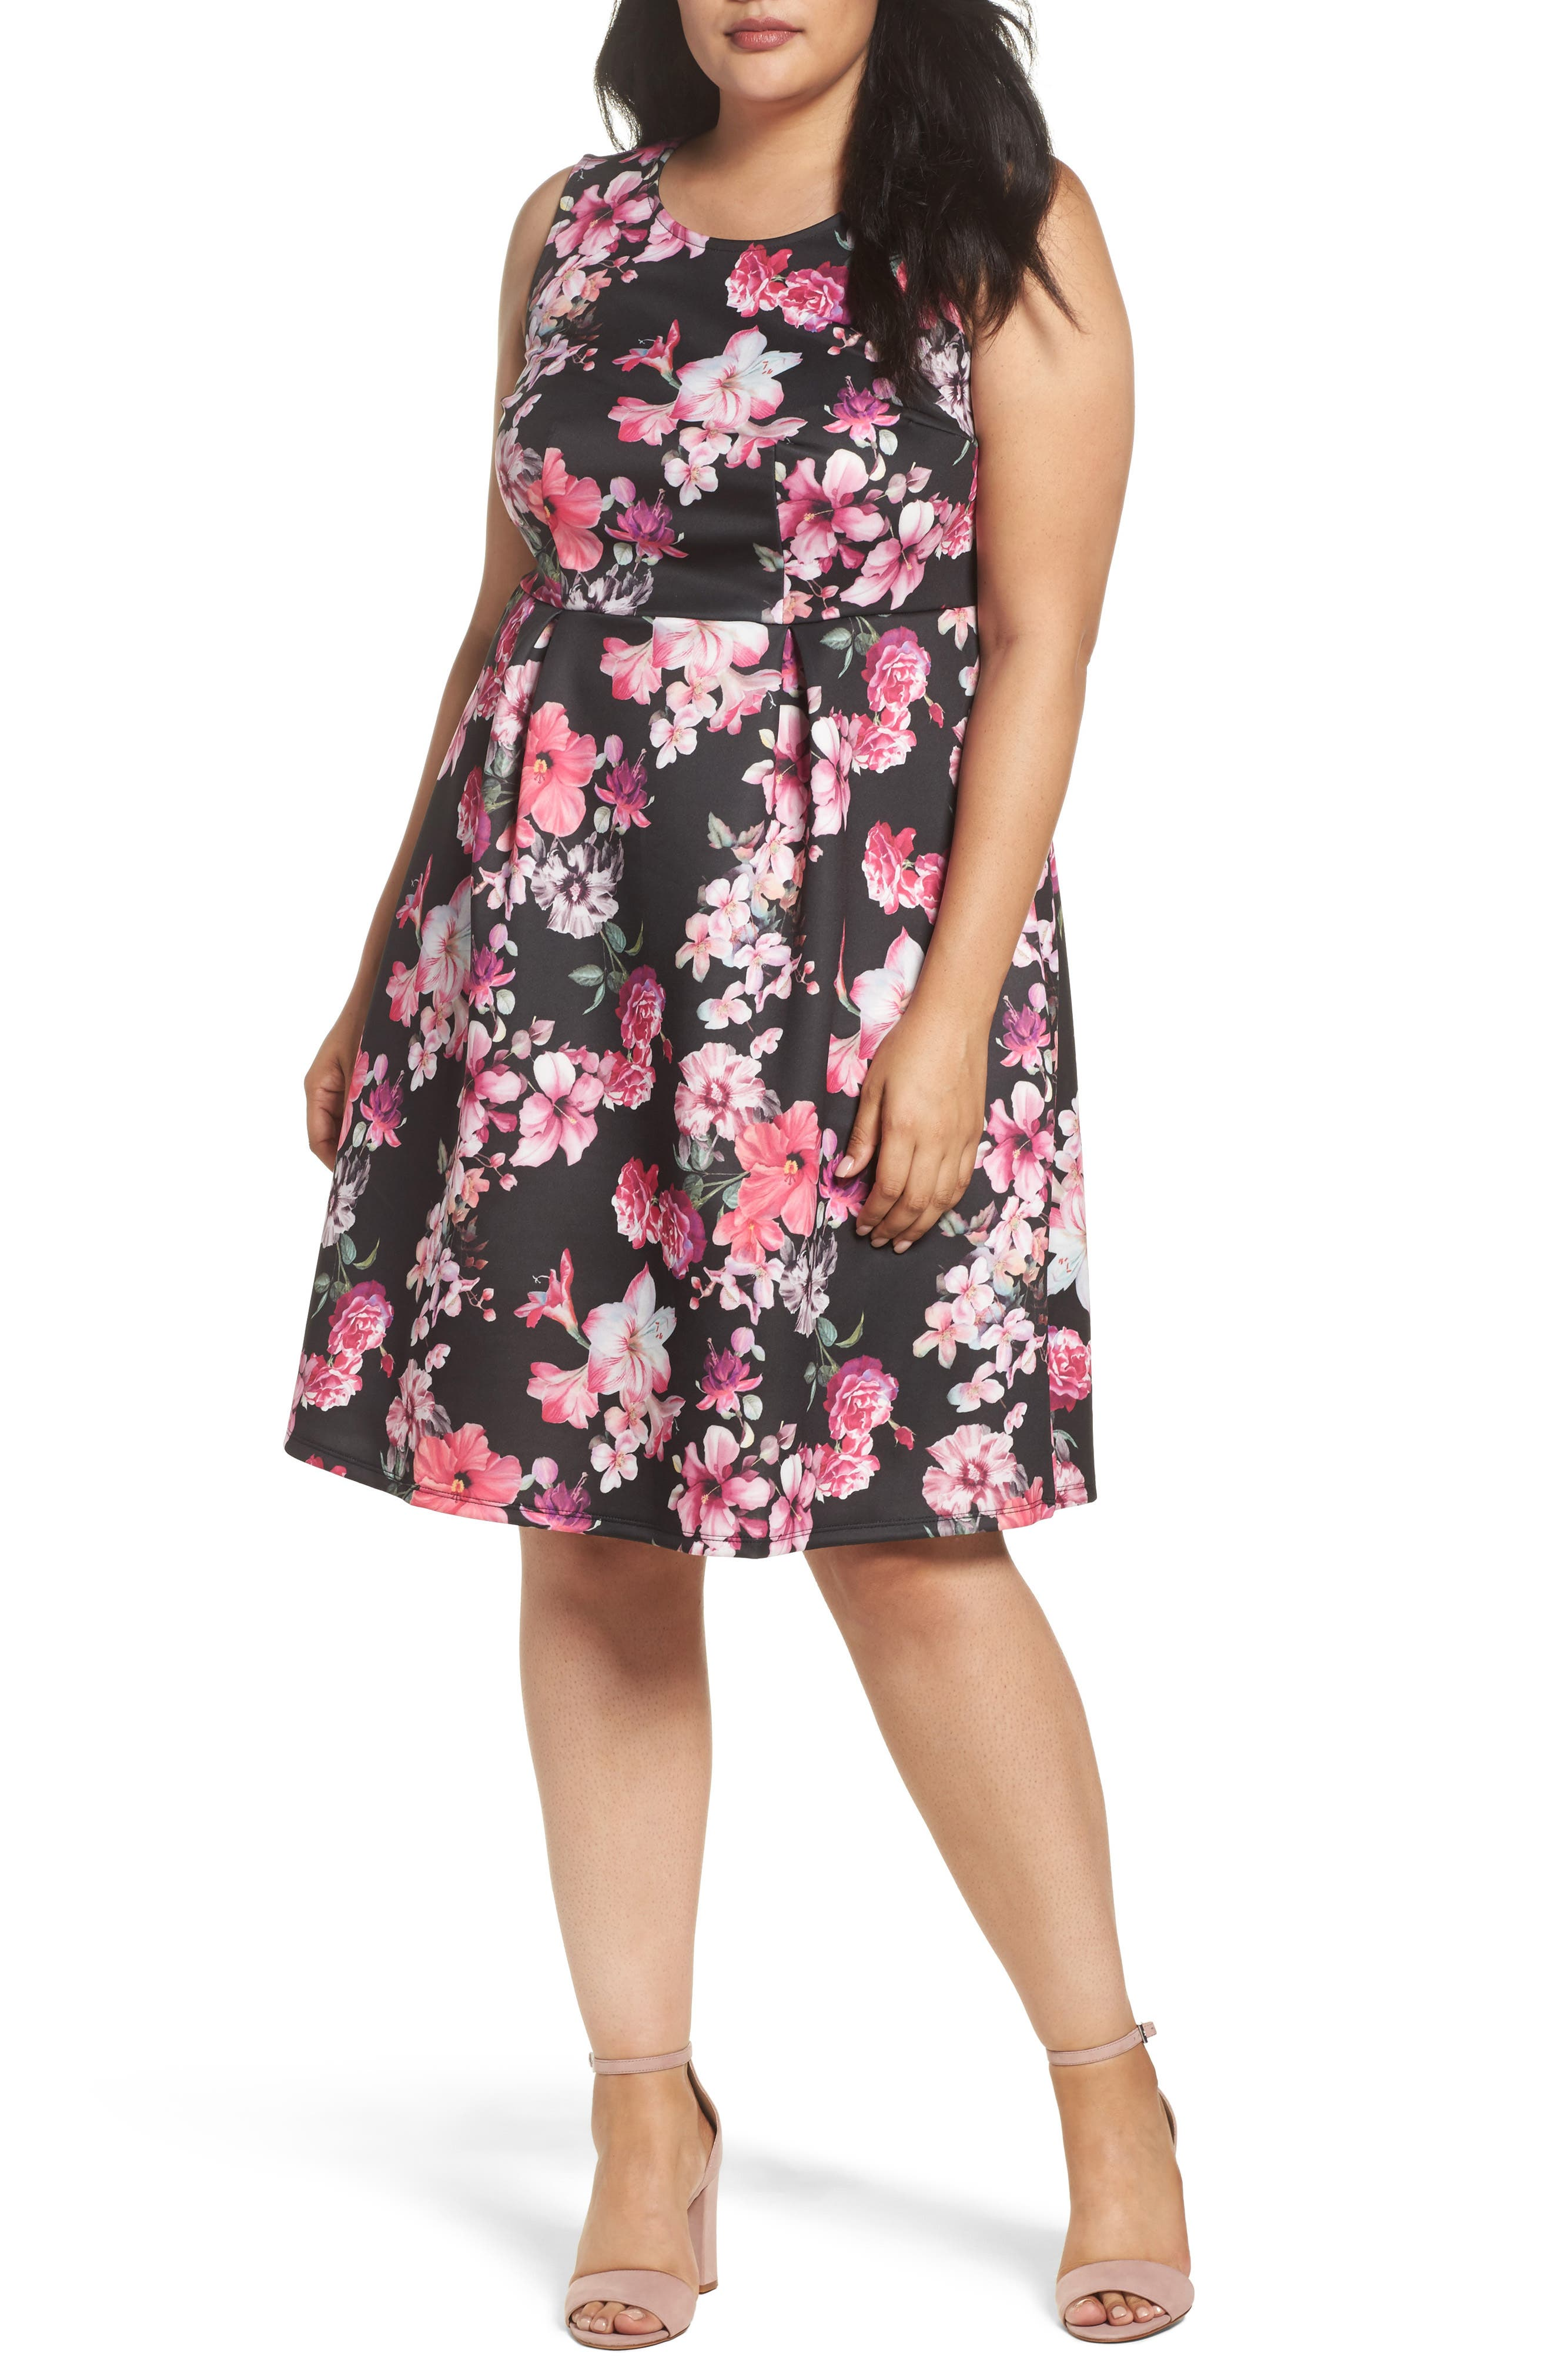 Main Image - Dorothy Perkins Floral Print Sleeveless Dress (Plus Size)